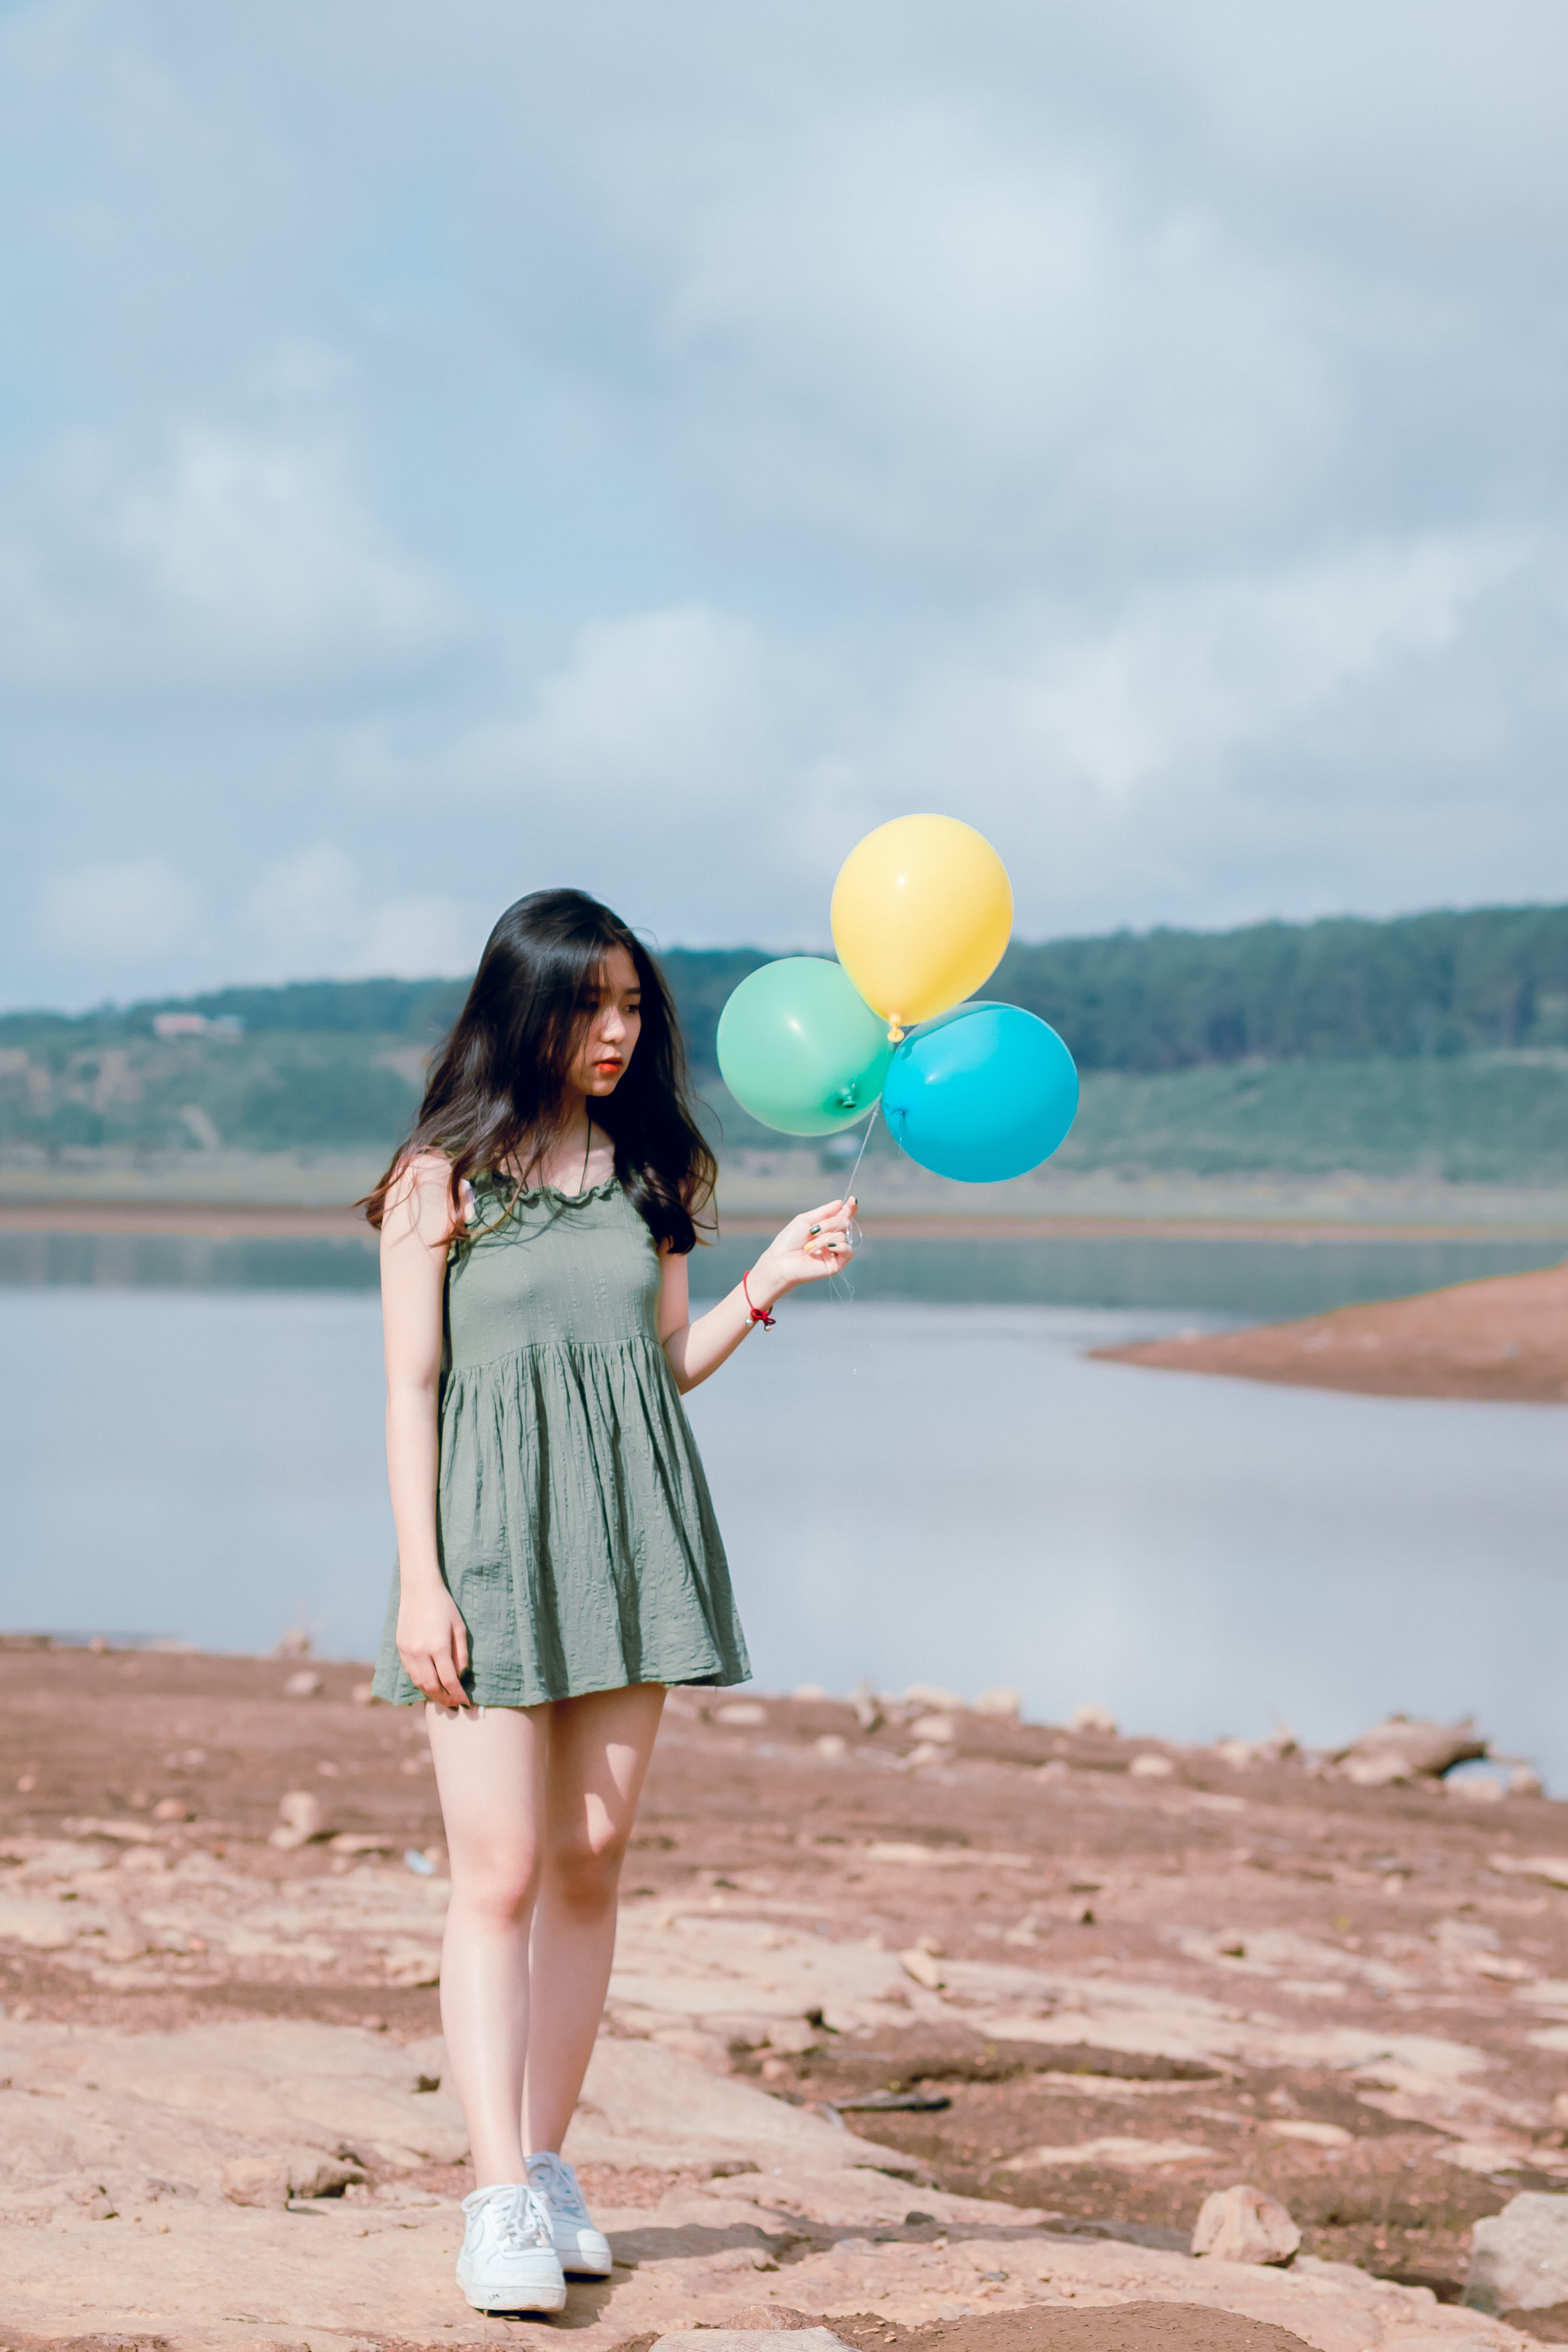 Woman in Green Sleeveless Dress Holding Balloons